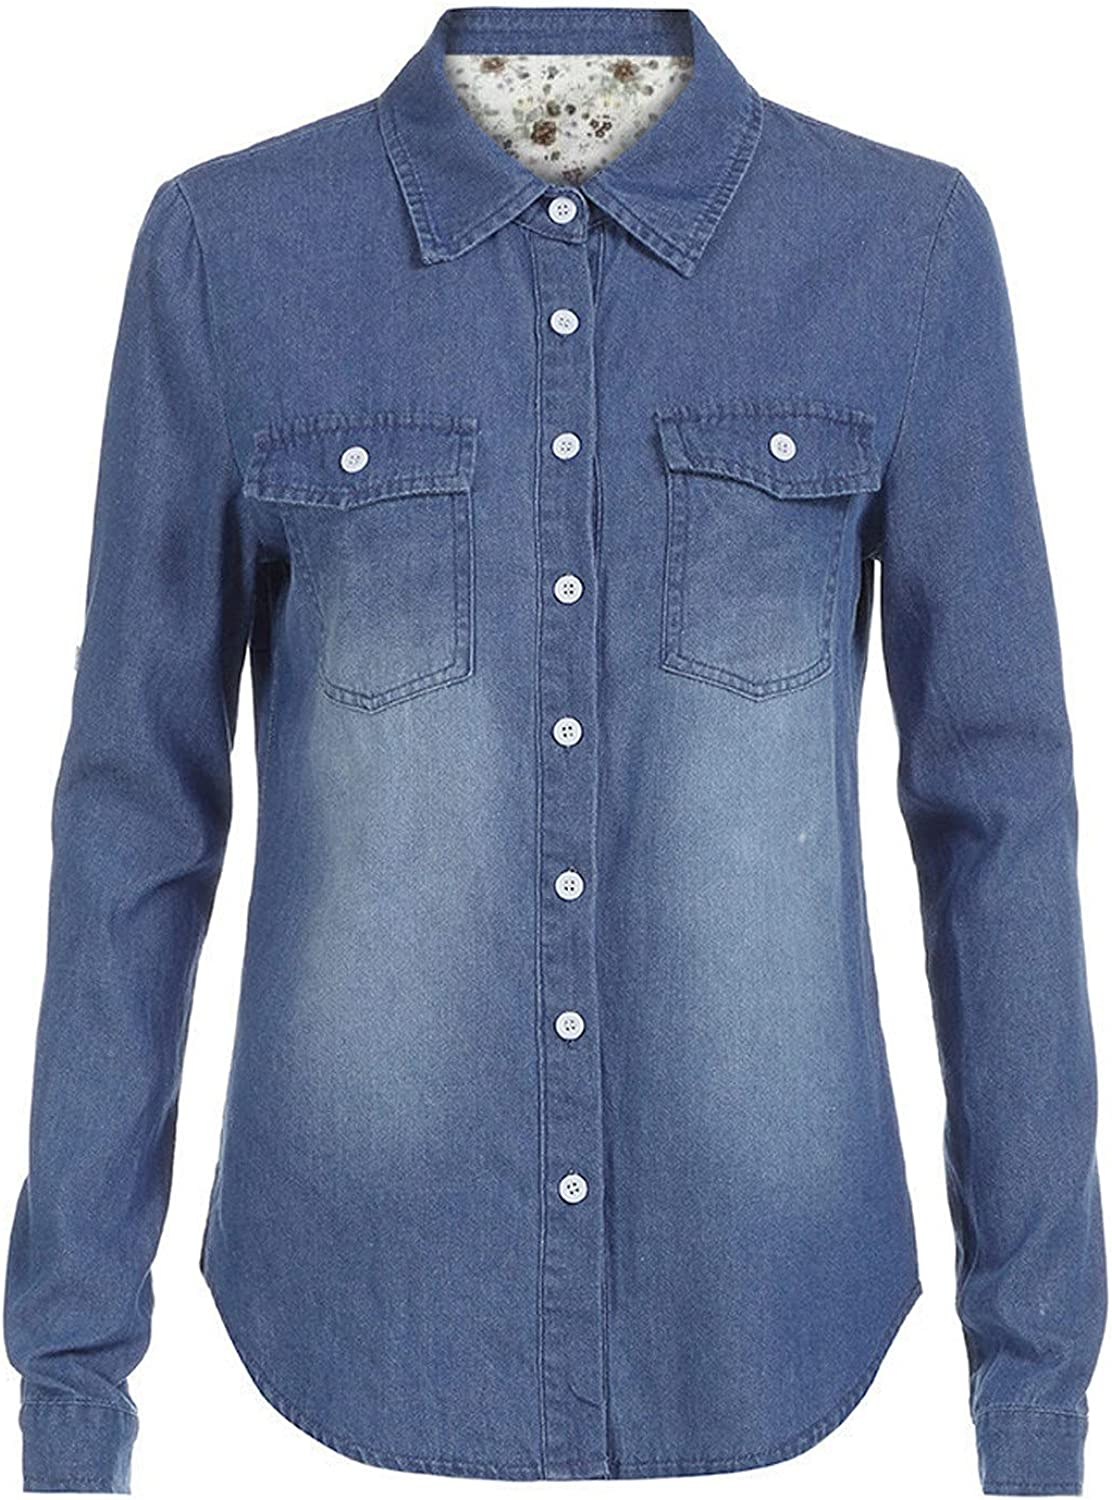 Women Denim Shirt Fashion Style Long Sleeve Casual Tunic Shirts Women Blouse Tops with Button and Pockets